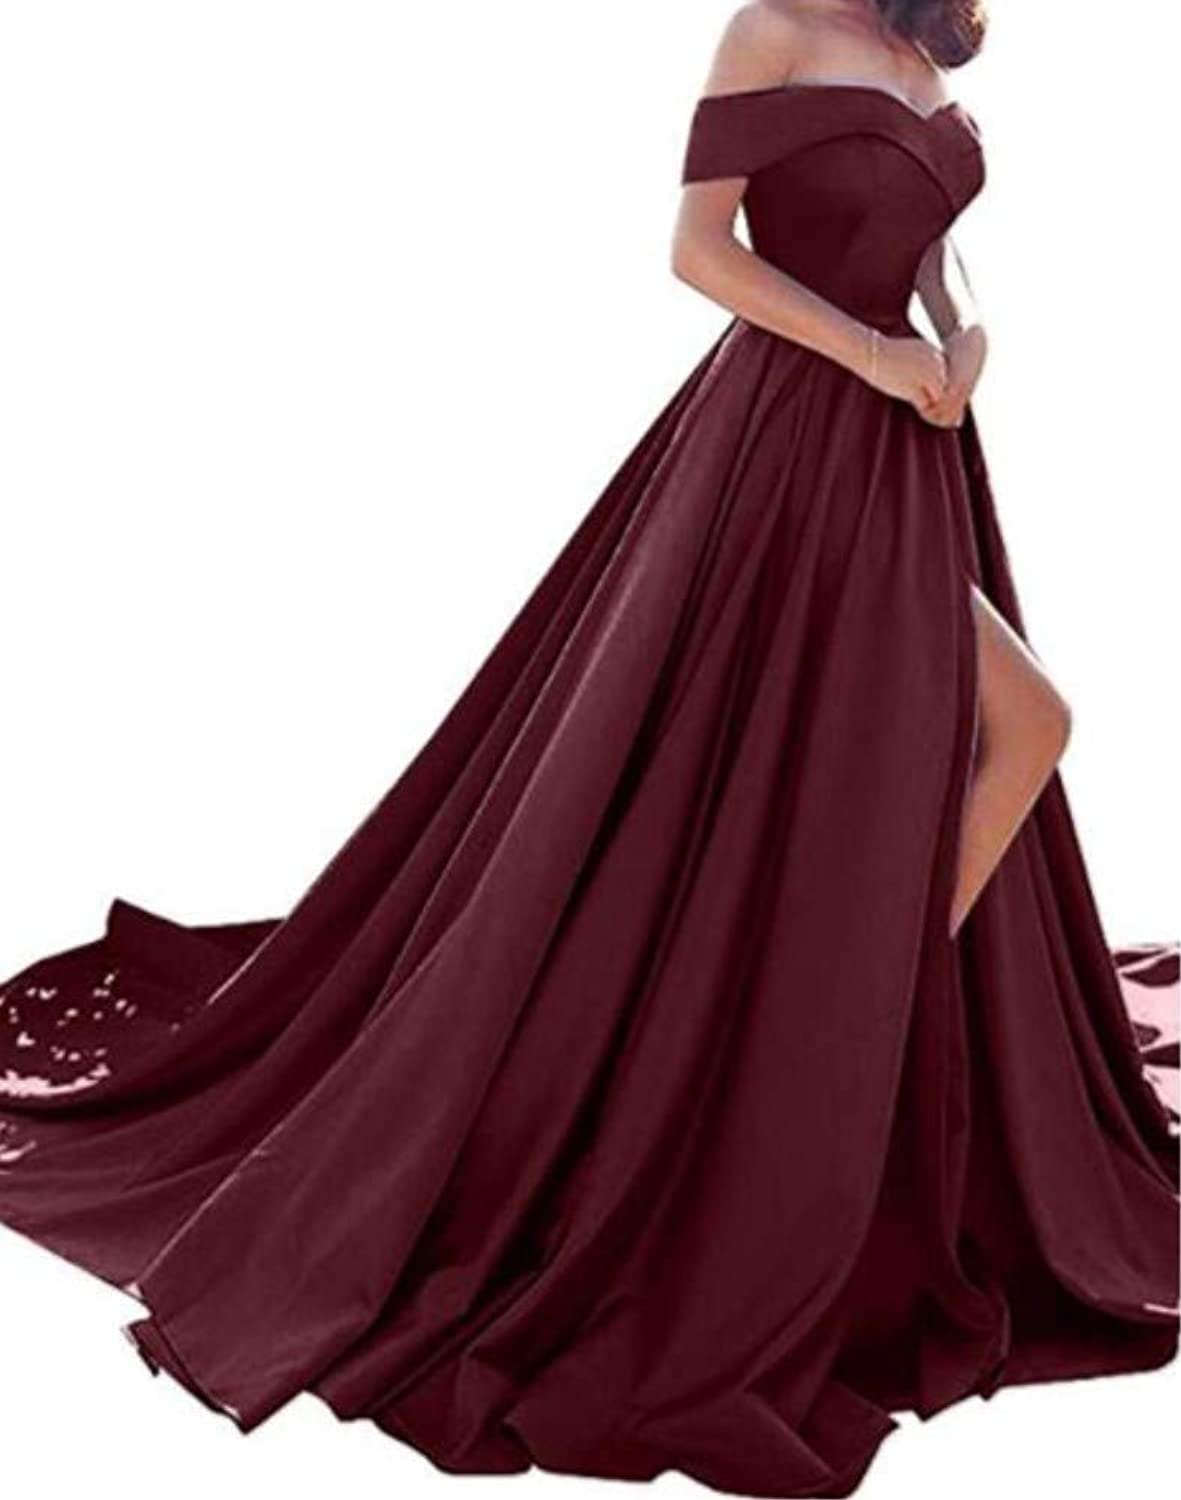 Ai Maria Women's ShowShouldered Satin LongStyle Ball Dress ALine Skirt for Official Evening Dresses